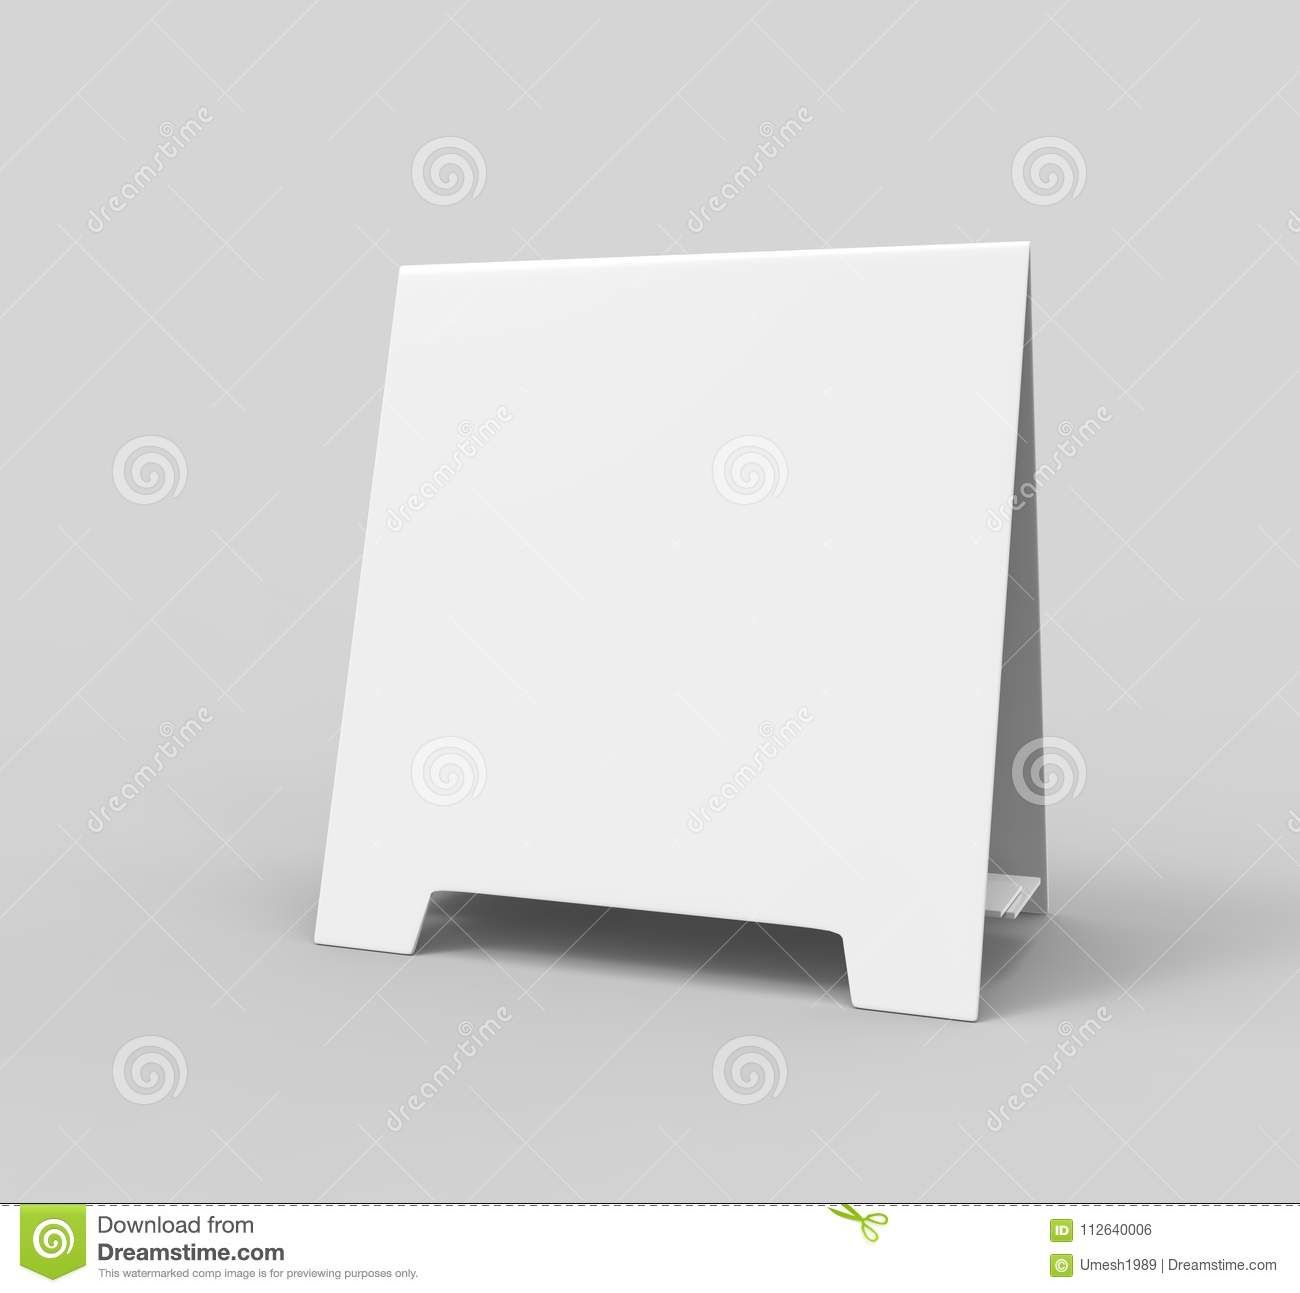 Tablet Tent Card Talkers Promotional Menu Card White Blank Within Blank Tent Card Template Professional Plan Templates Card Template Tent Cards Menu Cards